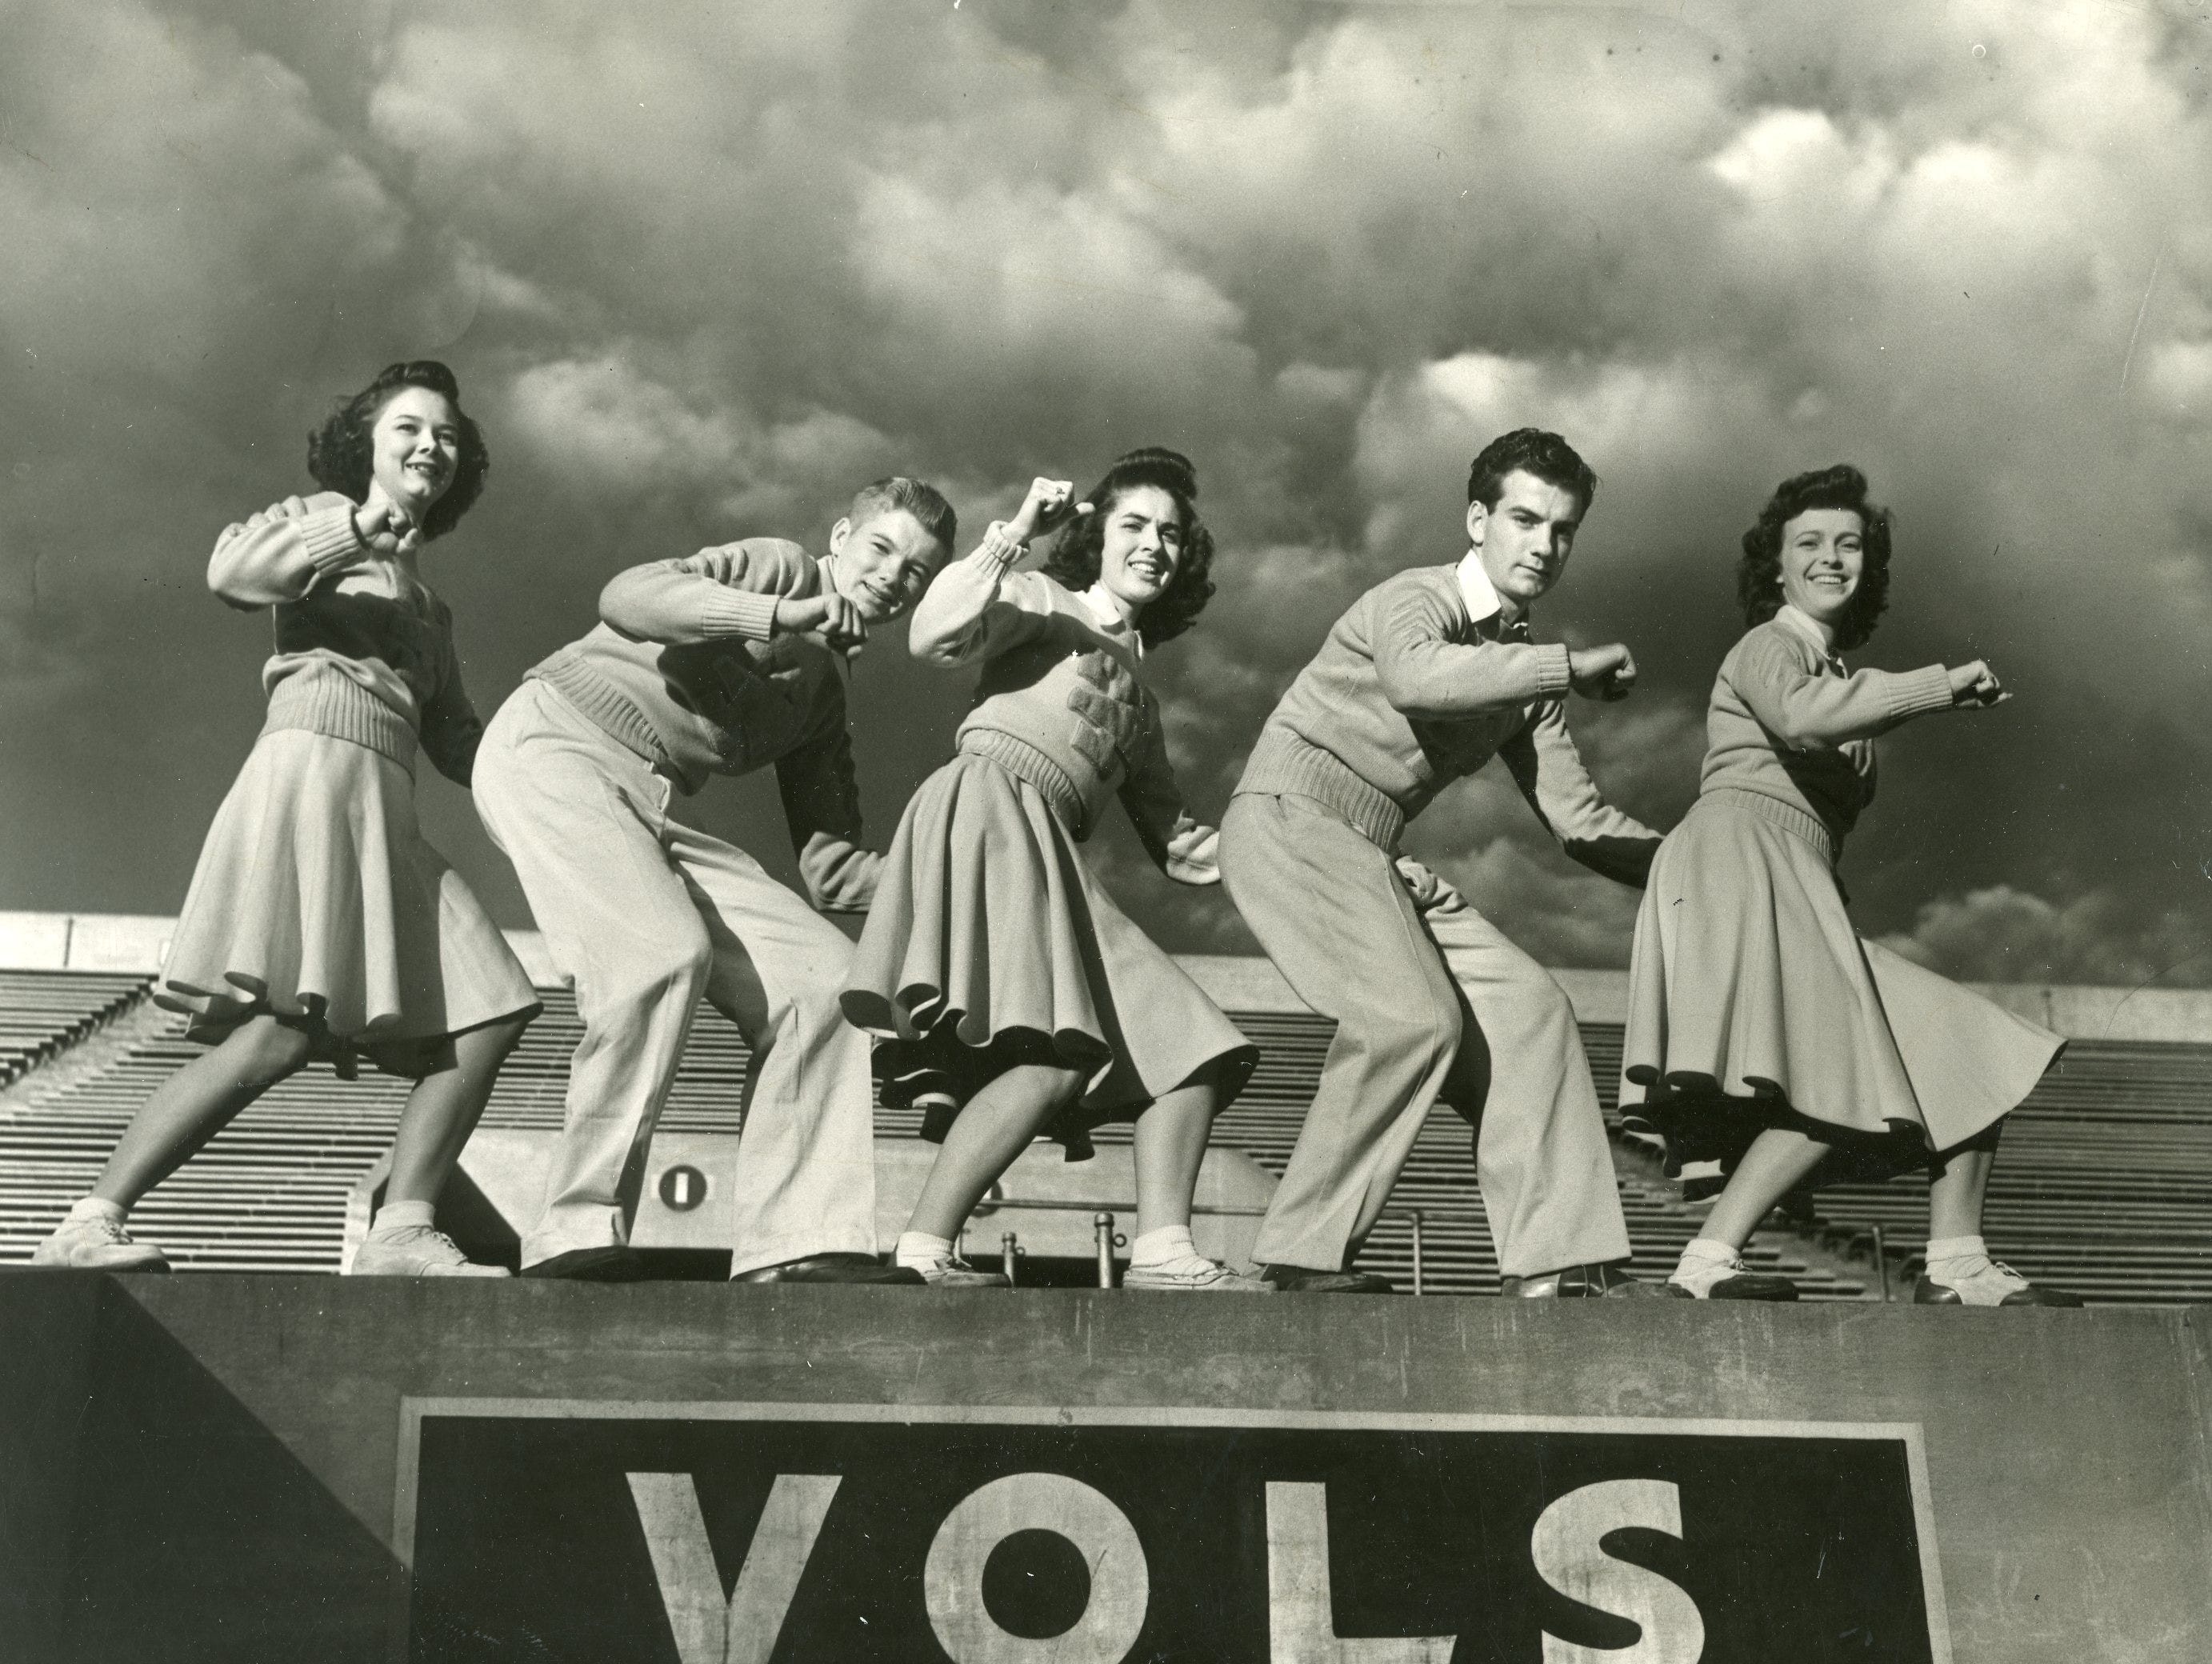 Members of the 1945 UT cheer team included Ann Gordon Dempster, Johnny Sterchi, Charlotte Poe, Charles Wolfenbarger and Buna Rudolph.